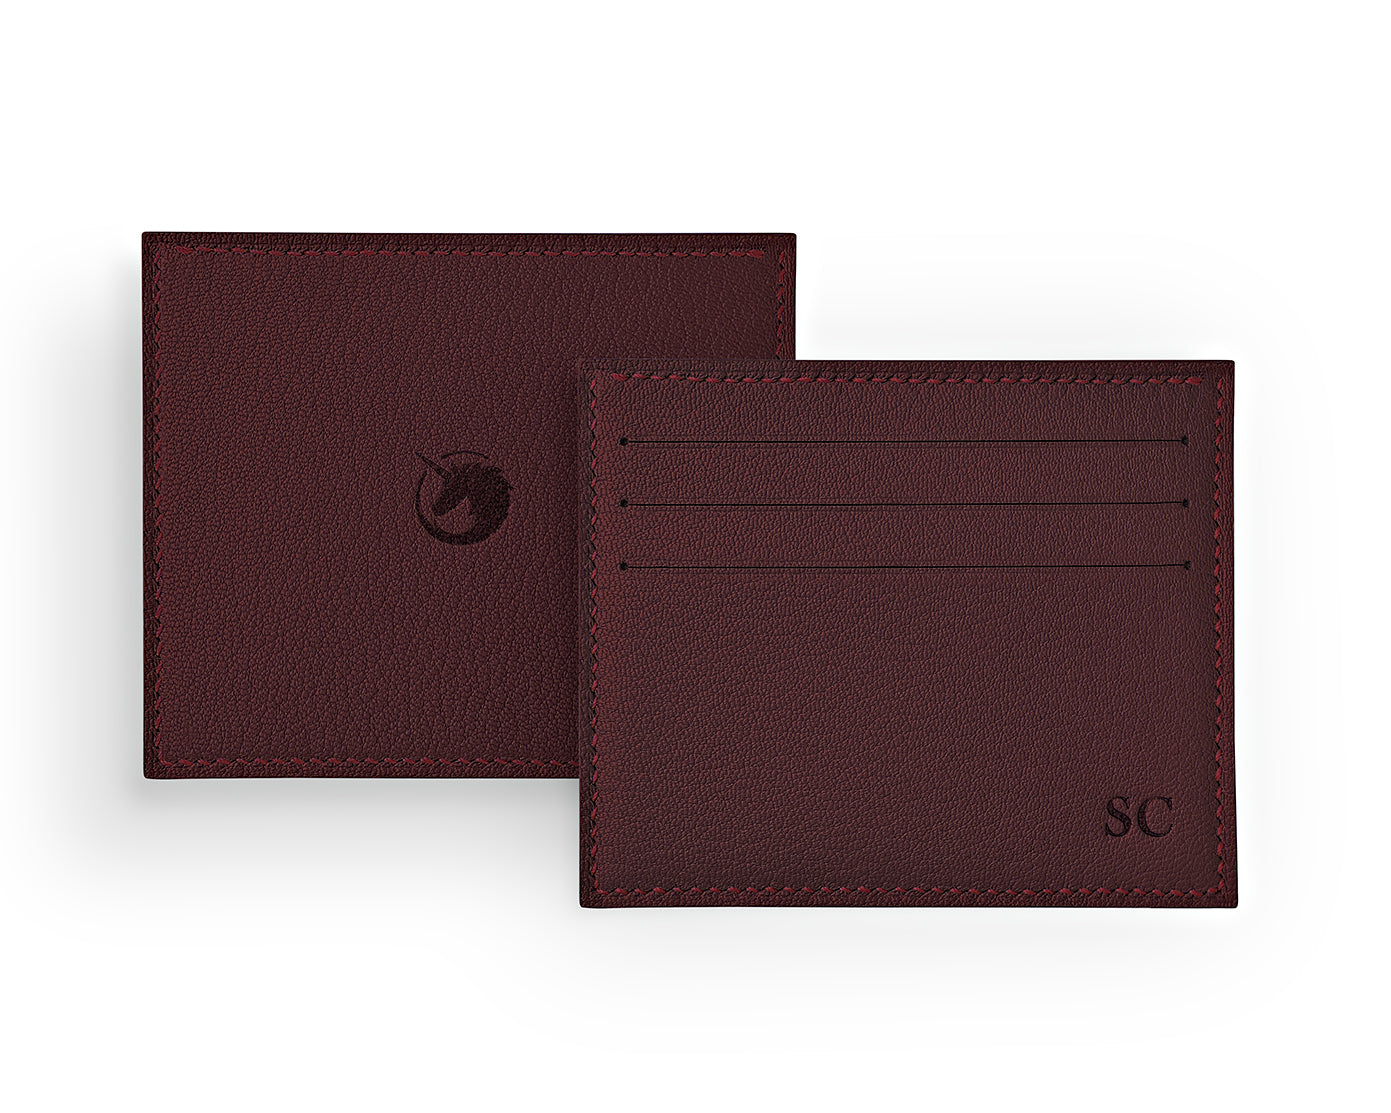 Solus III - Bordeaux - Made to order Goat Leather & Silk card holder